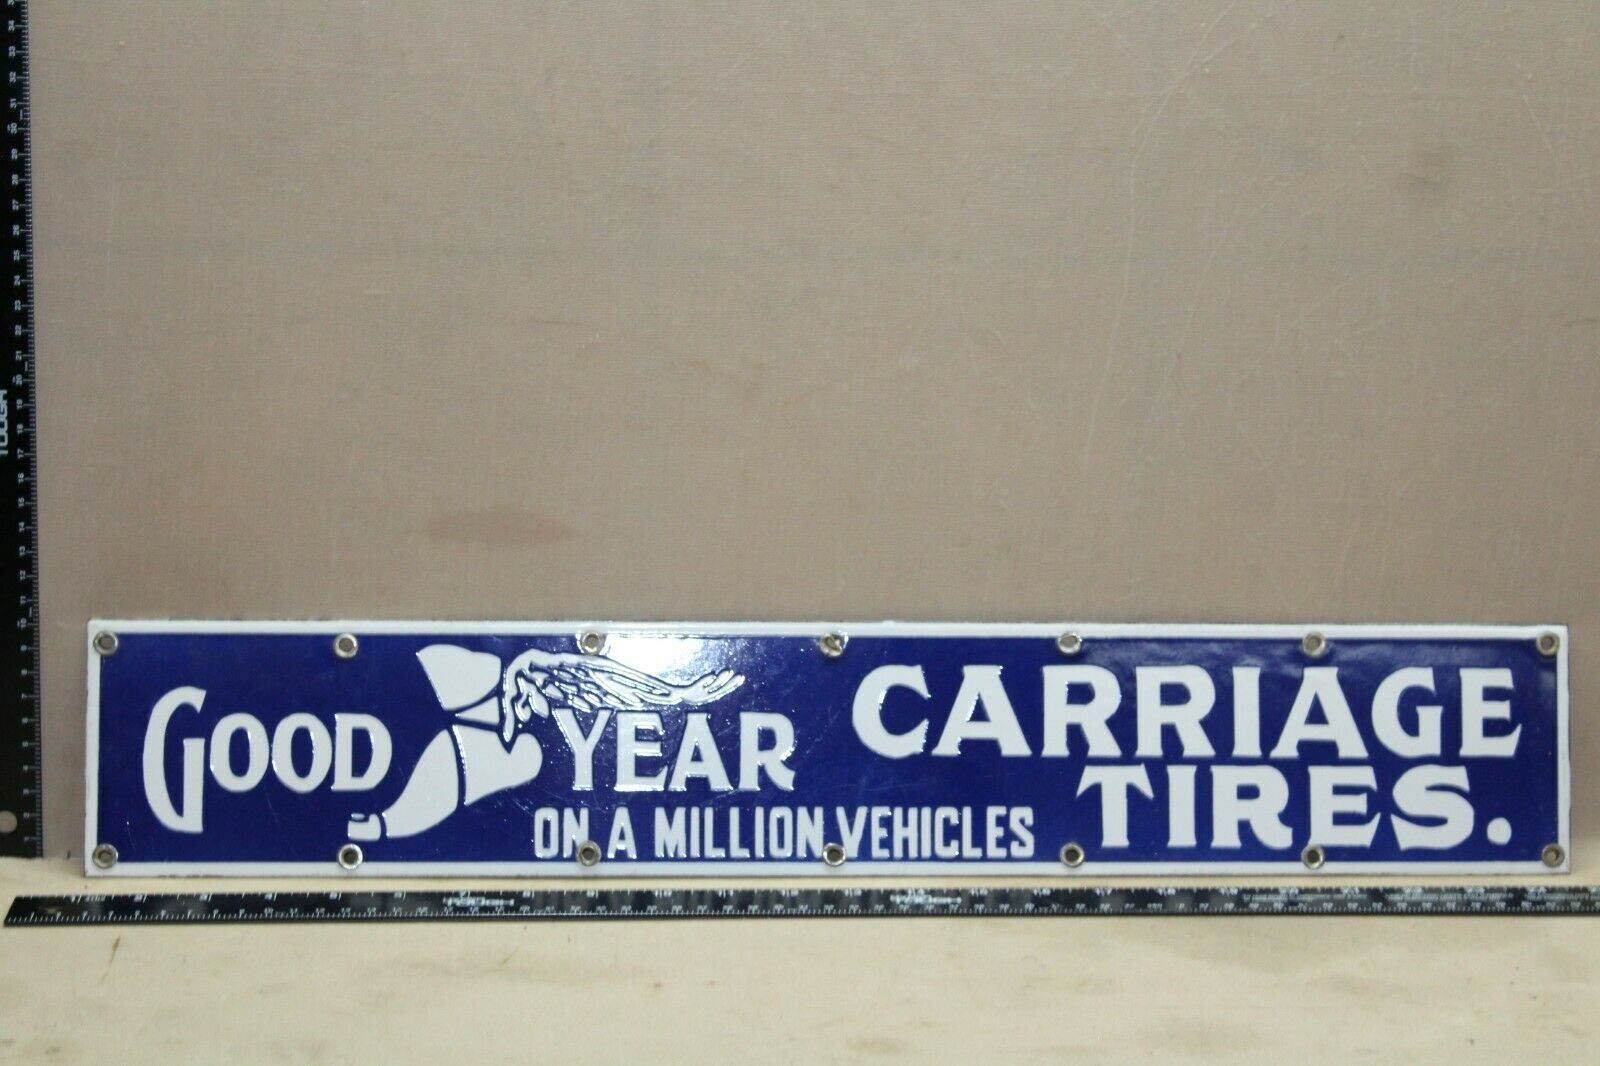 GOODYEAR CARRIAGE TIRES PORCELAIN METAL SIGN SERVICE GARAGE RUBBER OHIO GAS OIL - $0.99